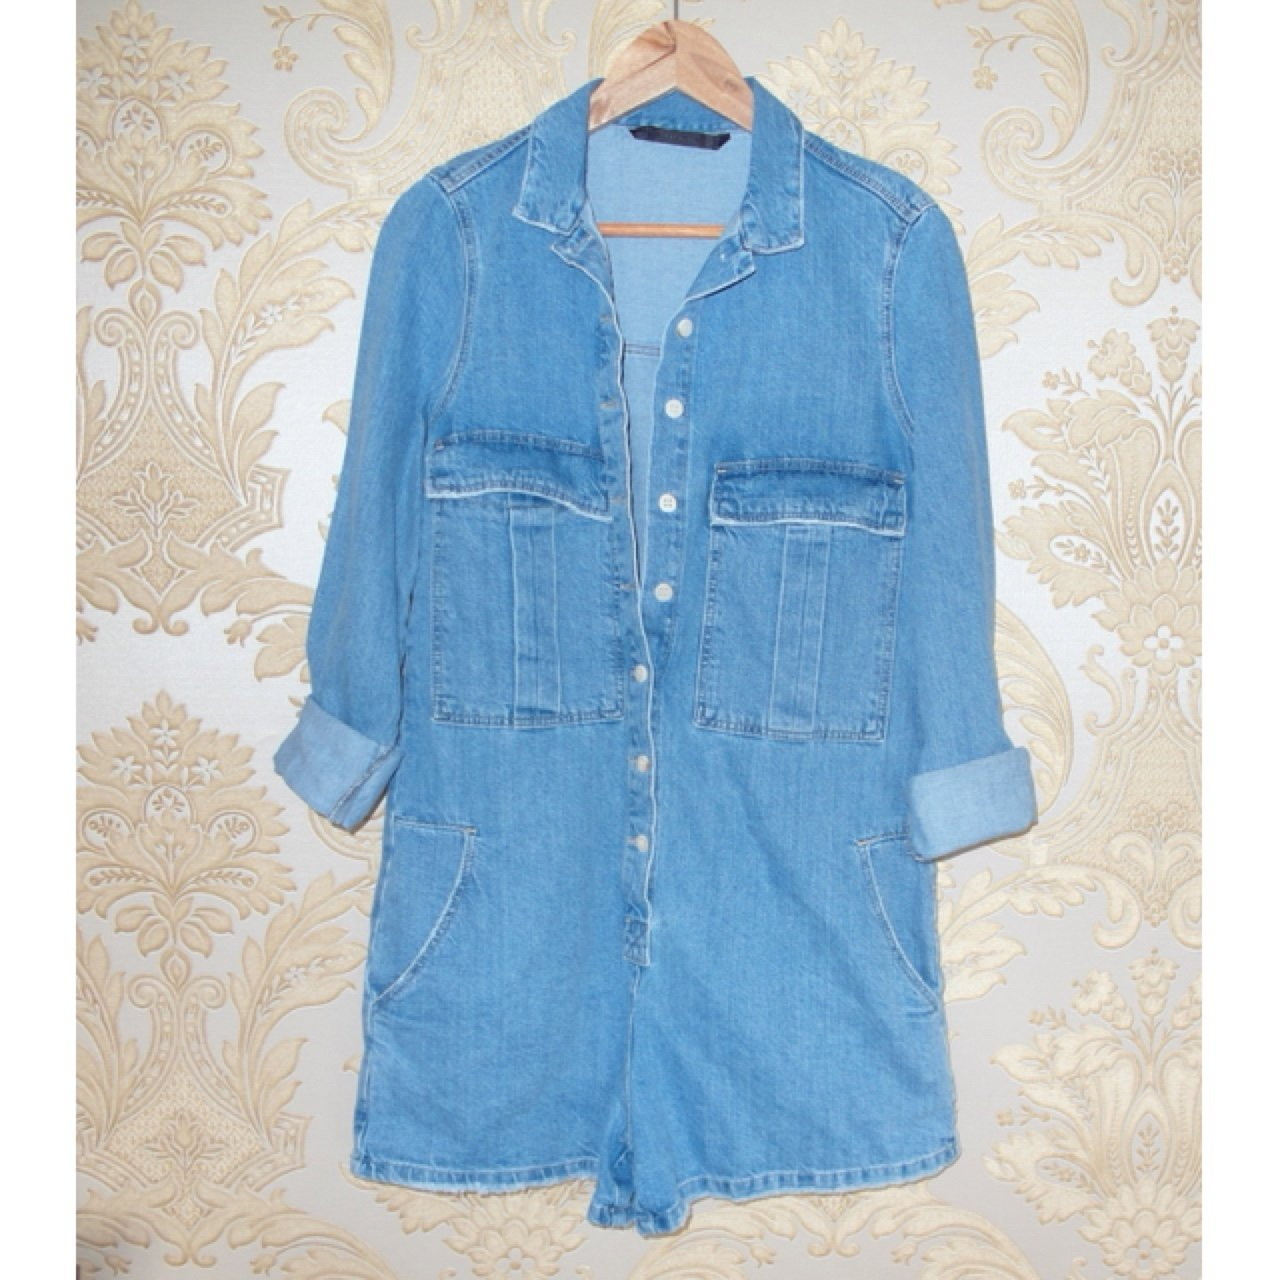 61292d70f7 Sold out Zara denim overall playsuit   jumpsuit. Size S 8 10 - Depop